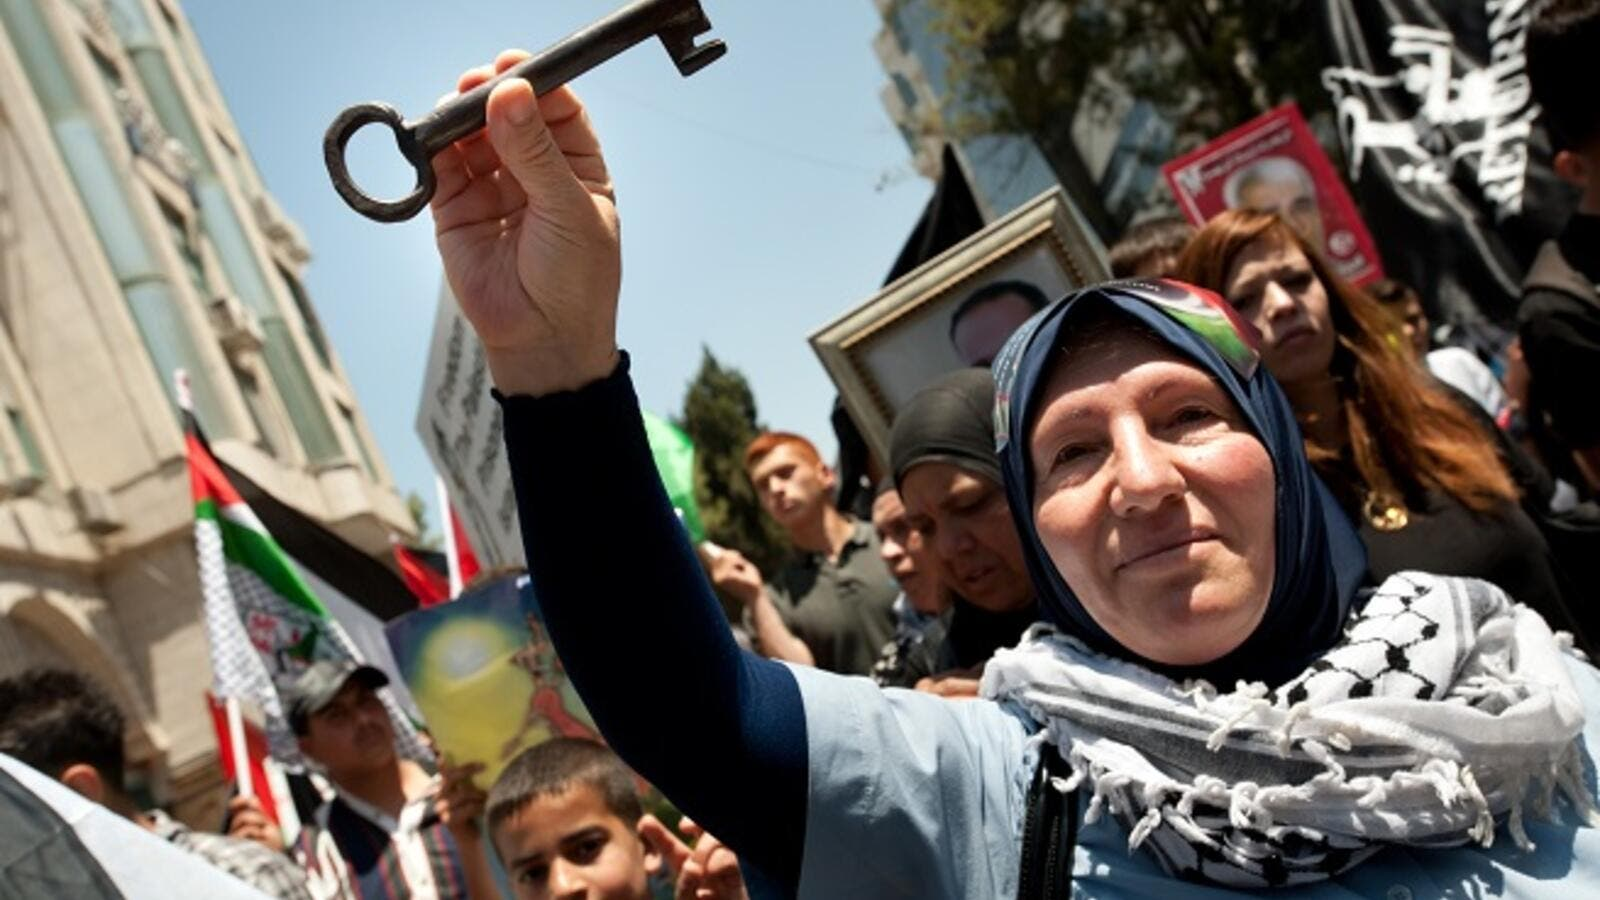 Russia will grant $10 million in financial aid for Palestinian refugees. (Shutterstock)